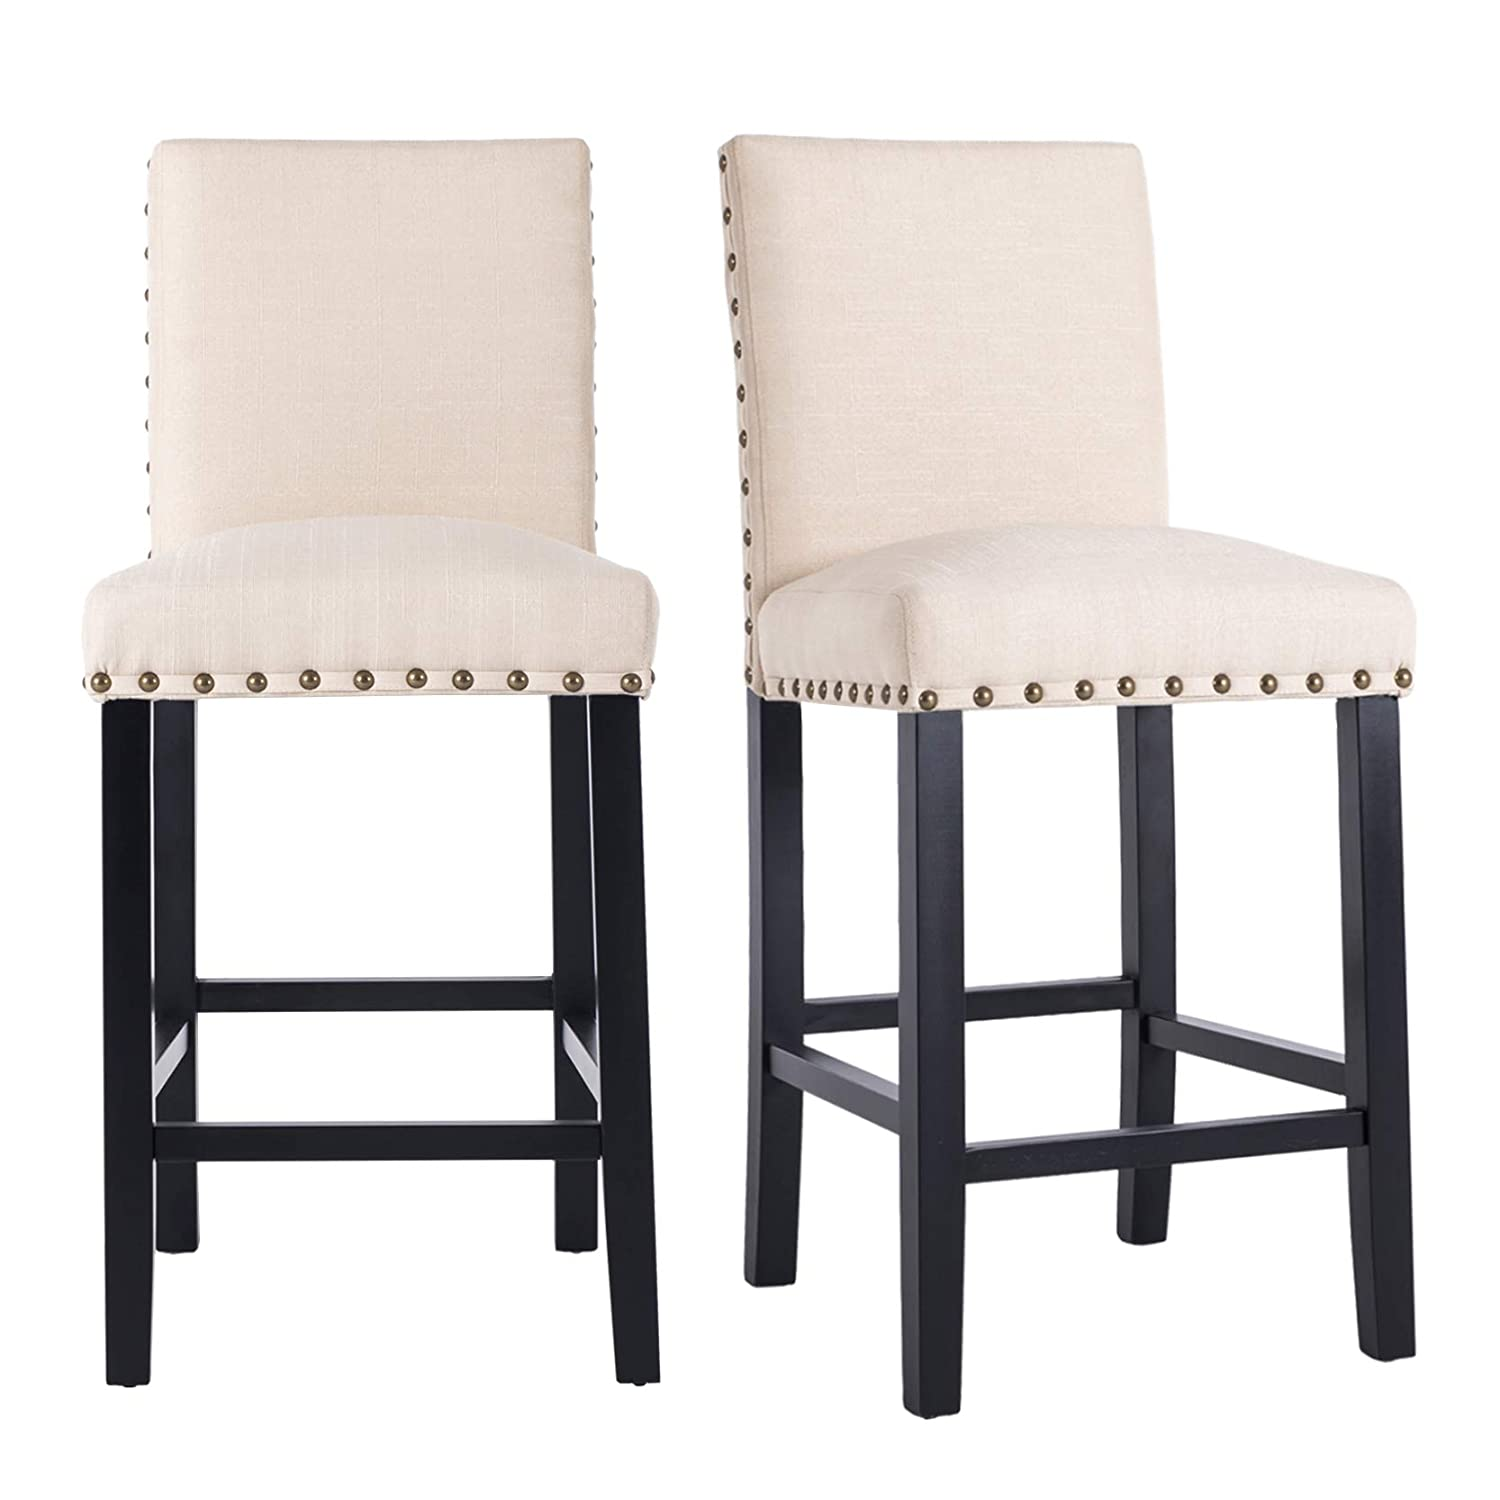 Enjoyable Gotminsi Nailhead 24 Counter Height Stools Upholstered Bar Stools With Solid Wood Legs Set Of 2 Beige Gmtry Best Dining Table And Chair Ideas Images Gmtryco